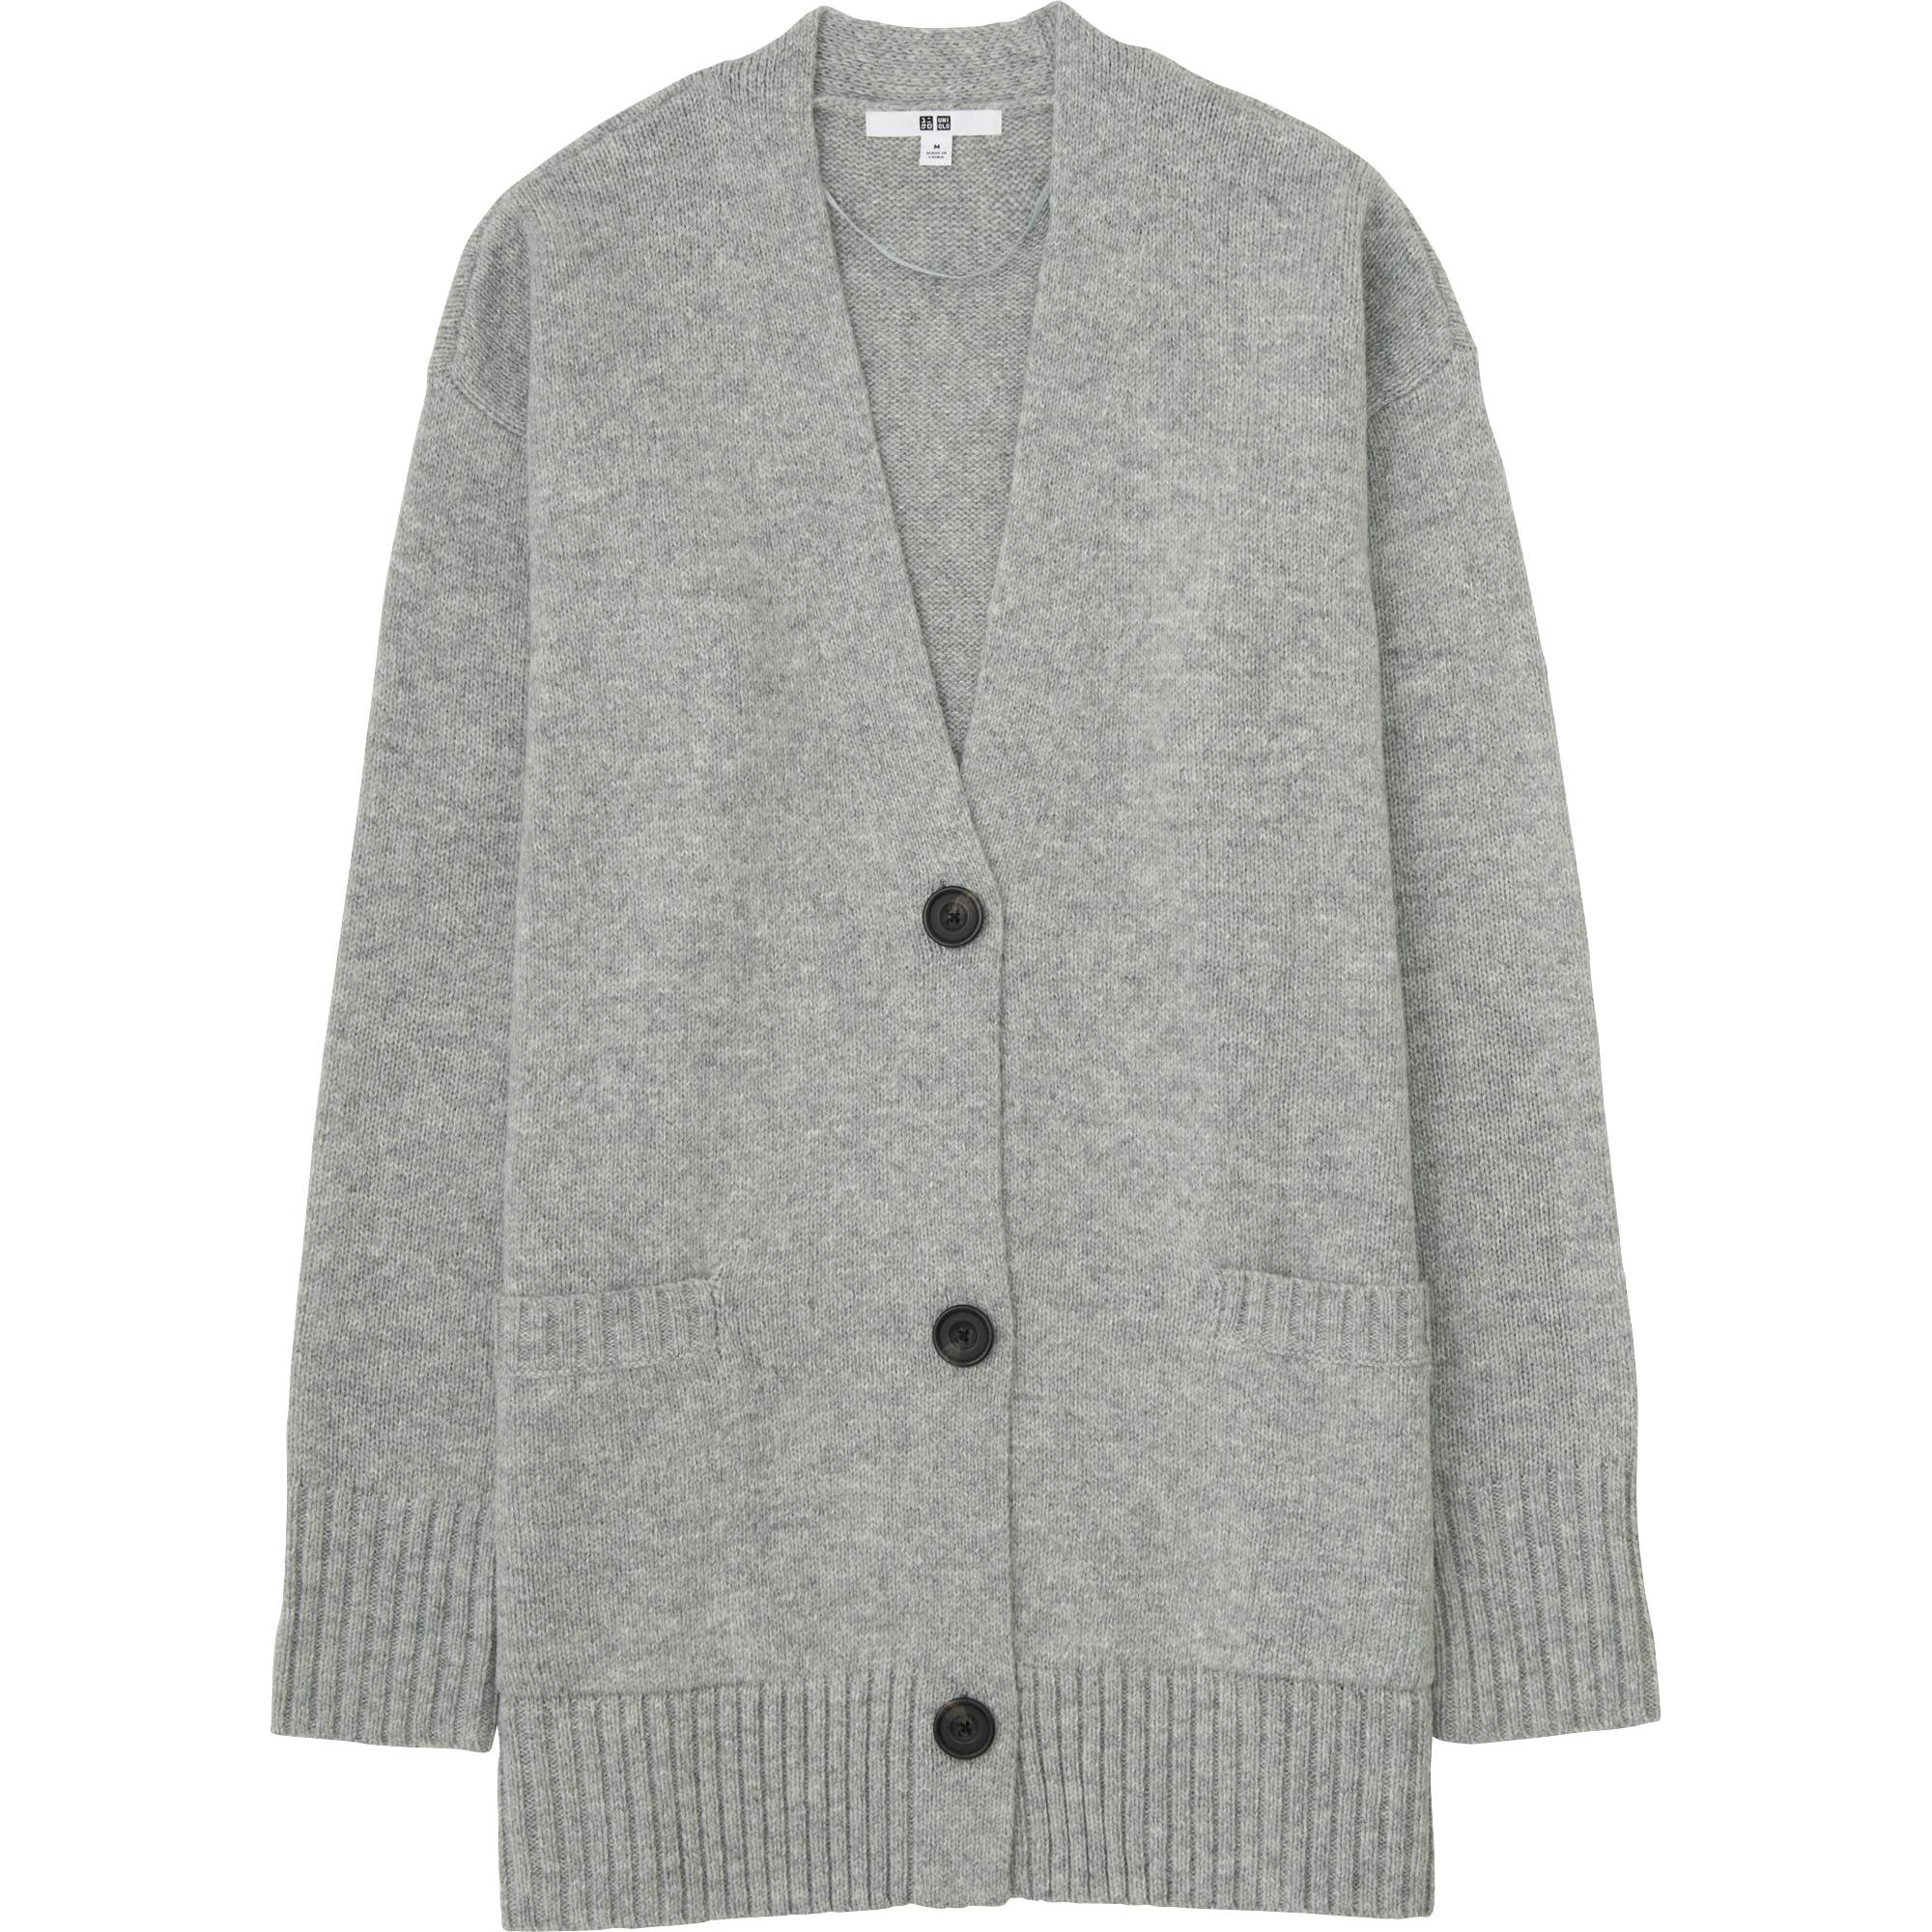 WOMEN HEAVY GAUGE OVERSIZED CARDIGAN | UNIQLO US